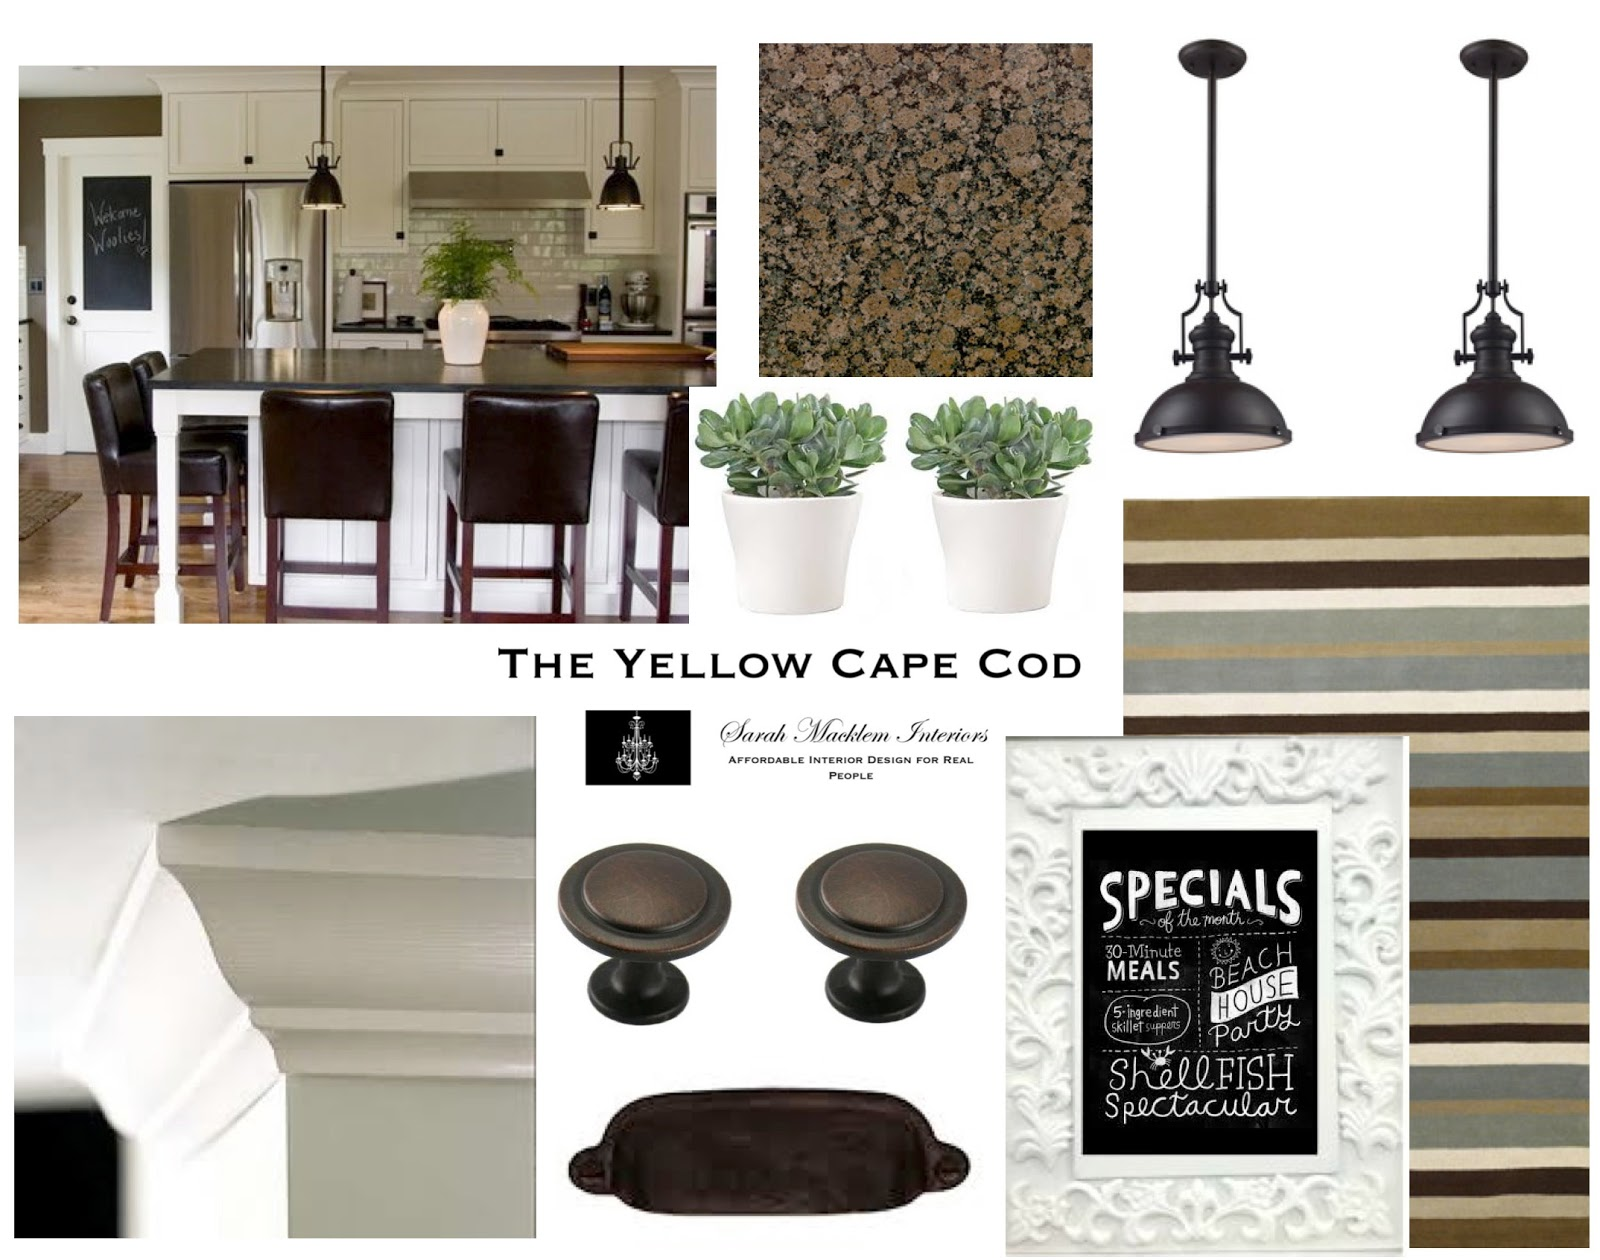 The Yellow Cape Cod Whole House Design Plan